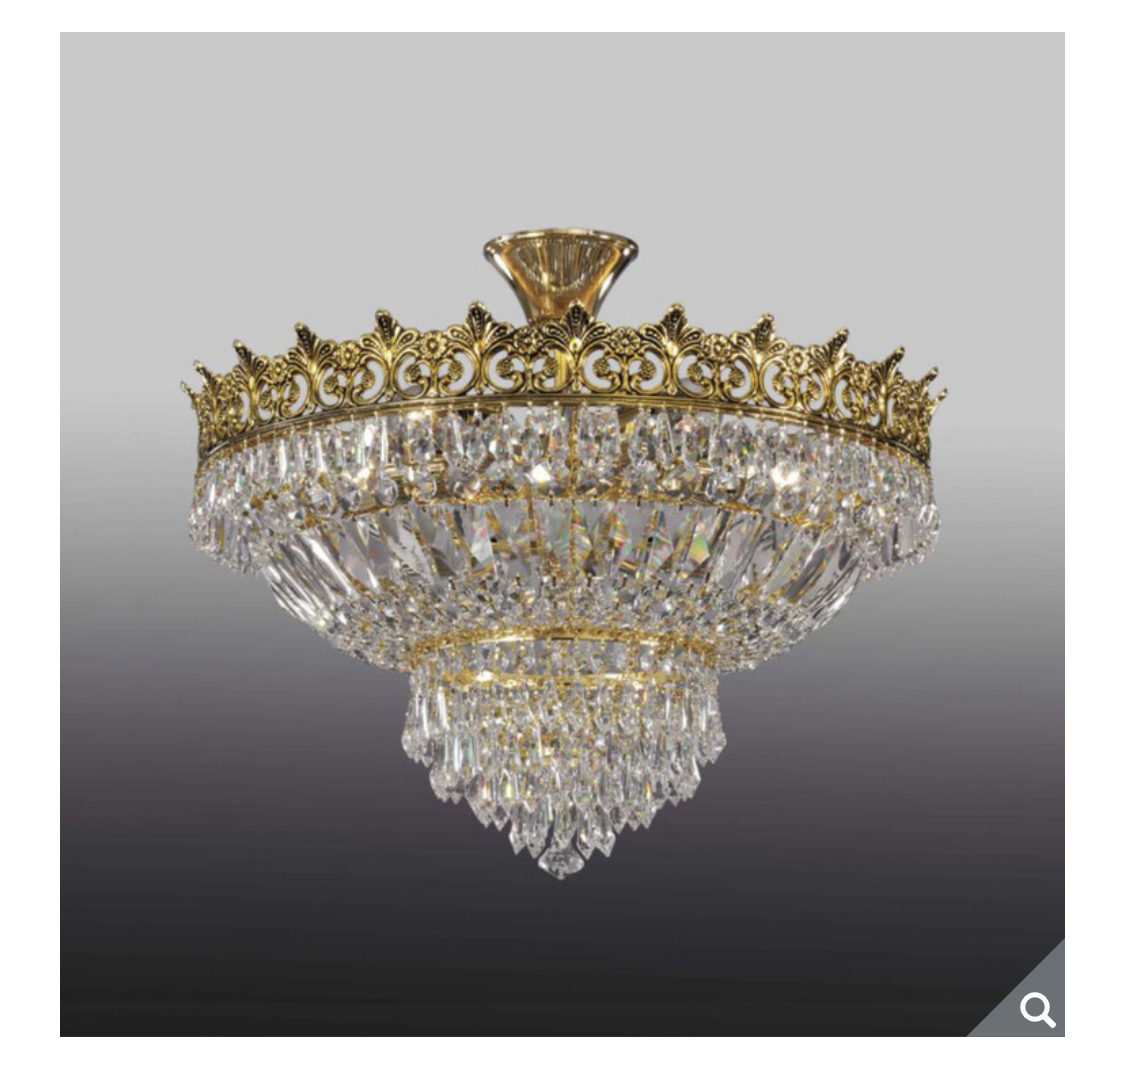 Swarovski Crystal Classic Chandelier Light in Gold